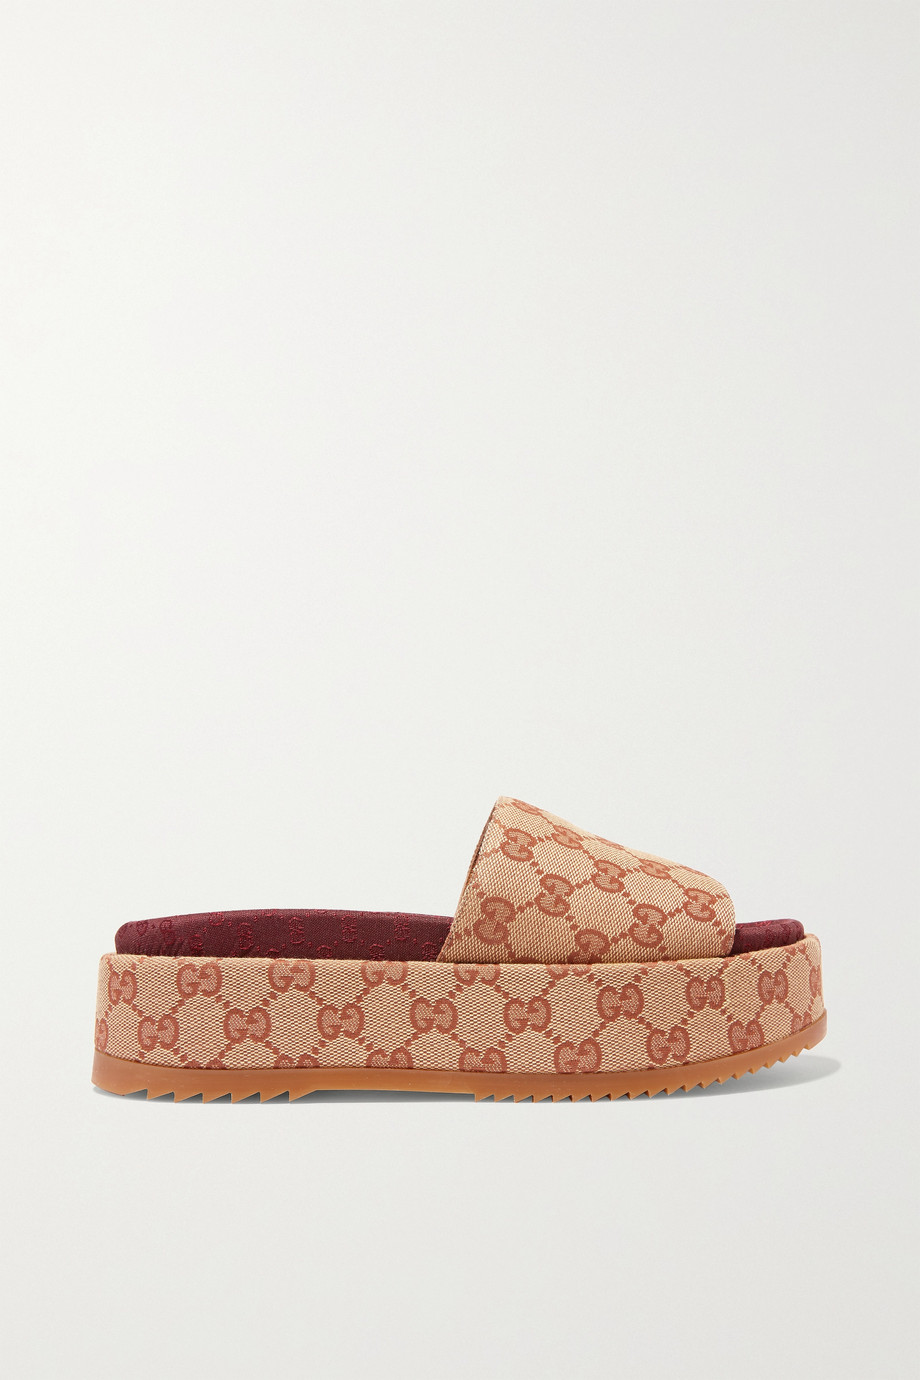 GUCCI Angelina logo-detailed coated-canvas platform sandals